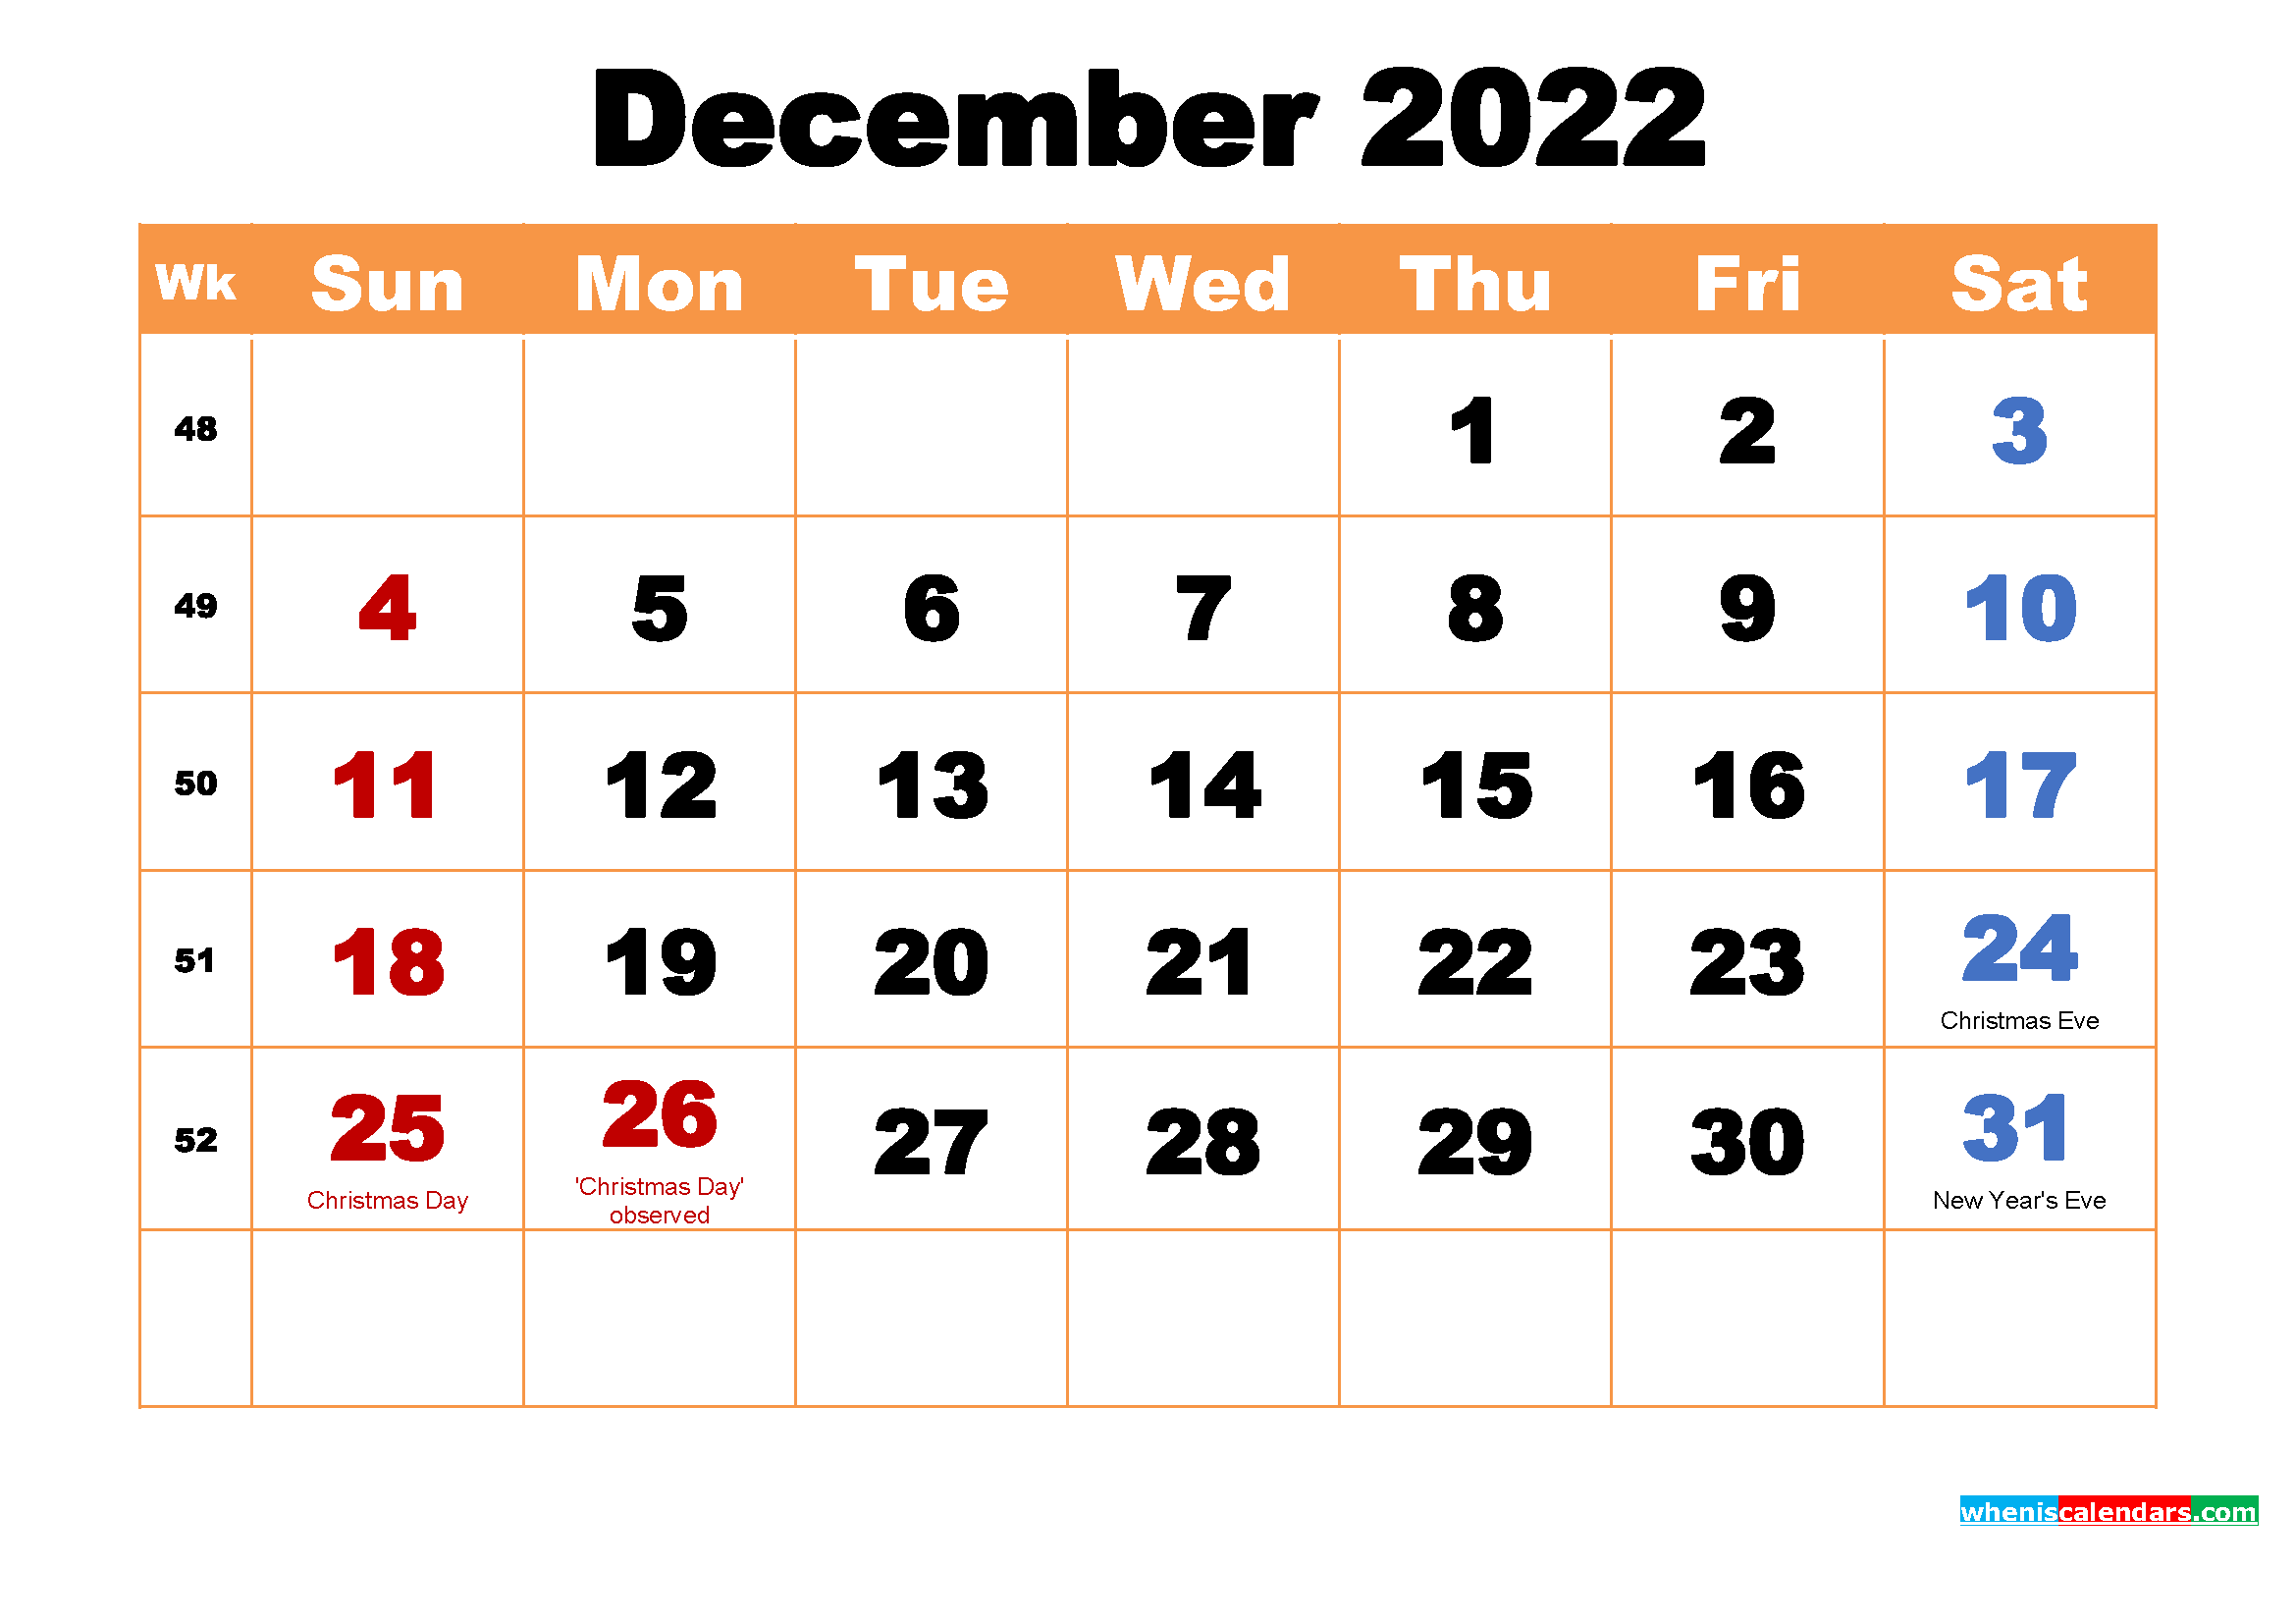 December 2022 Printable Monthly Calendar with Holidays